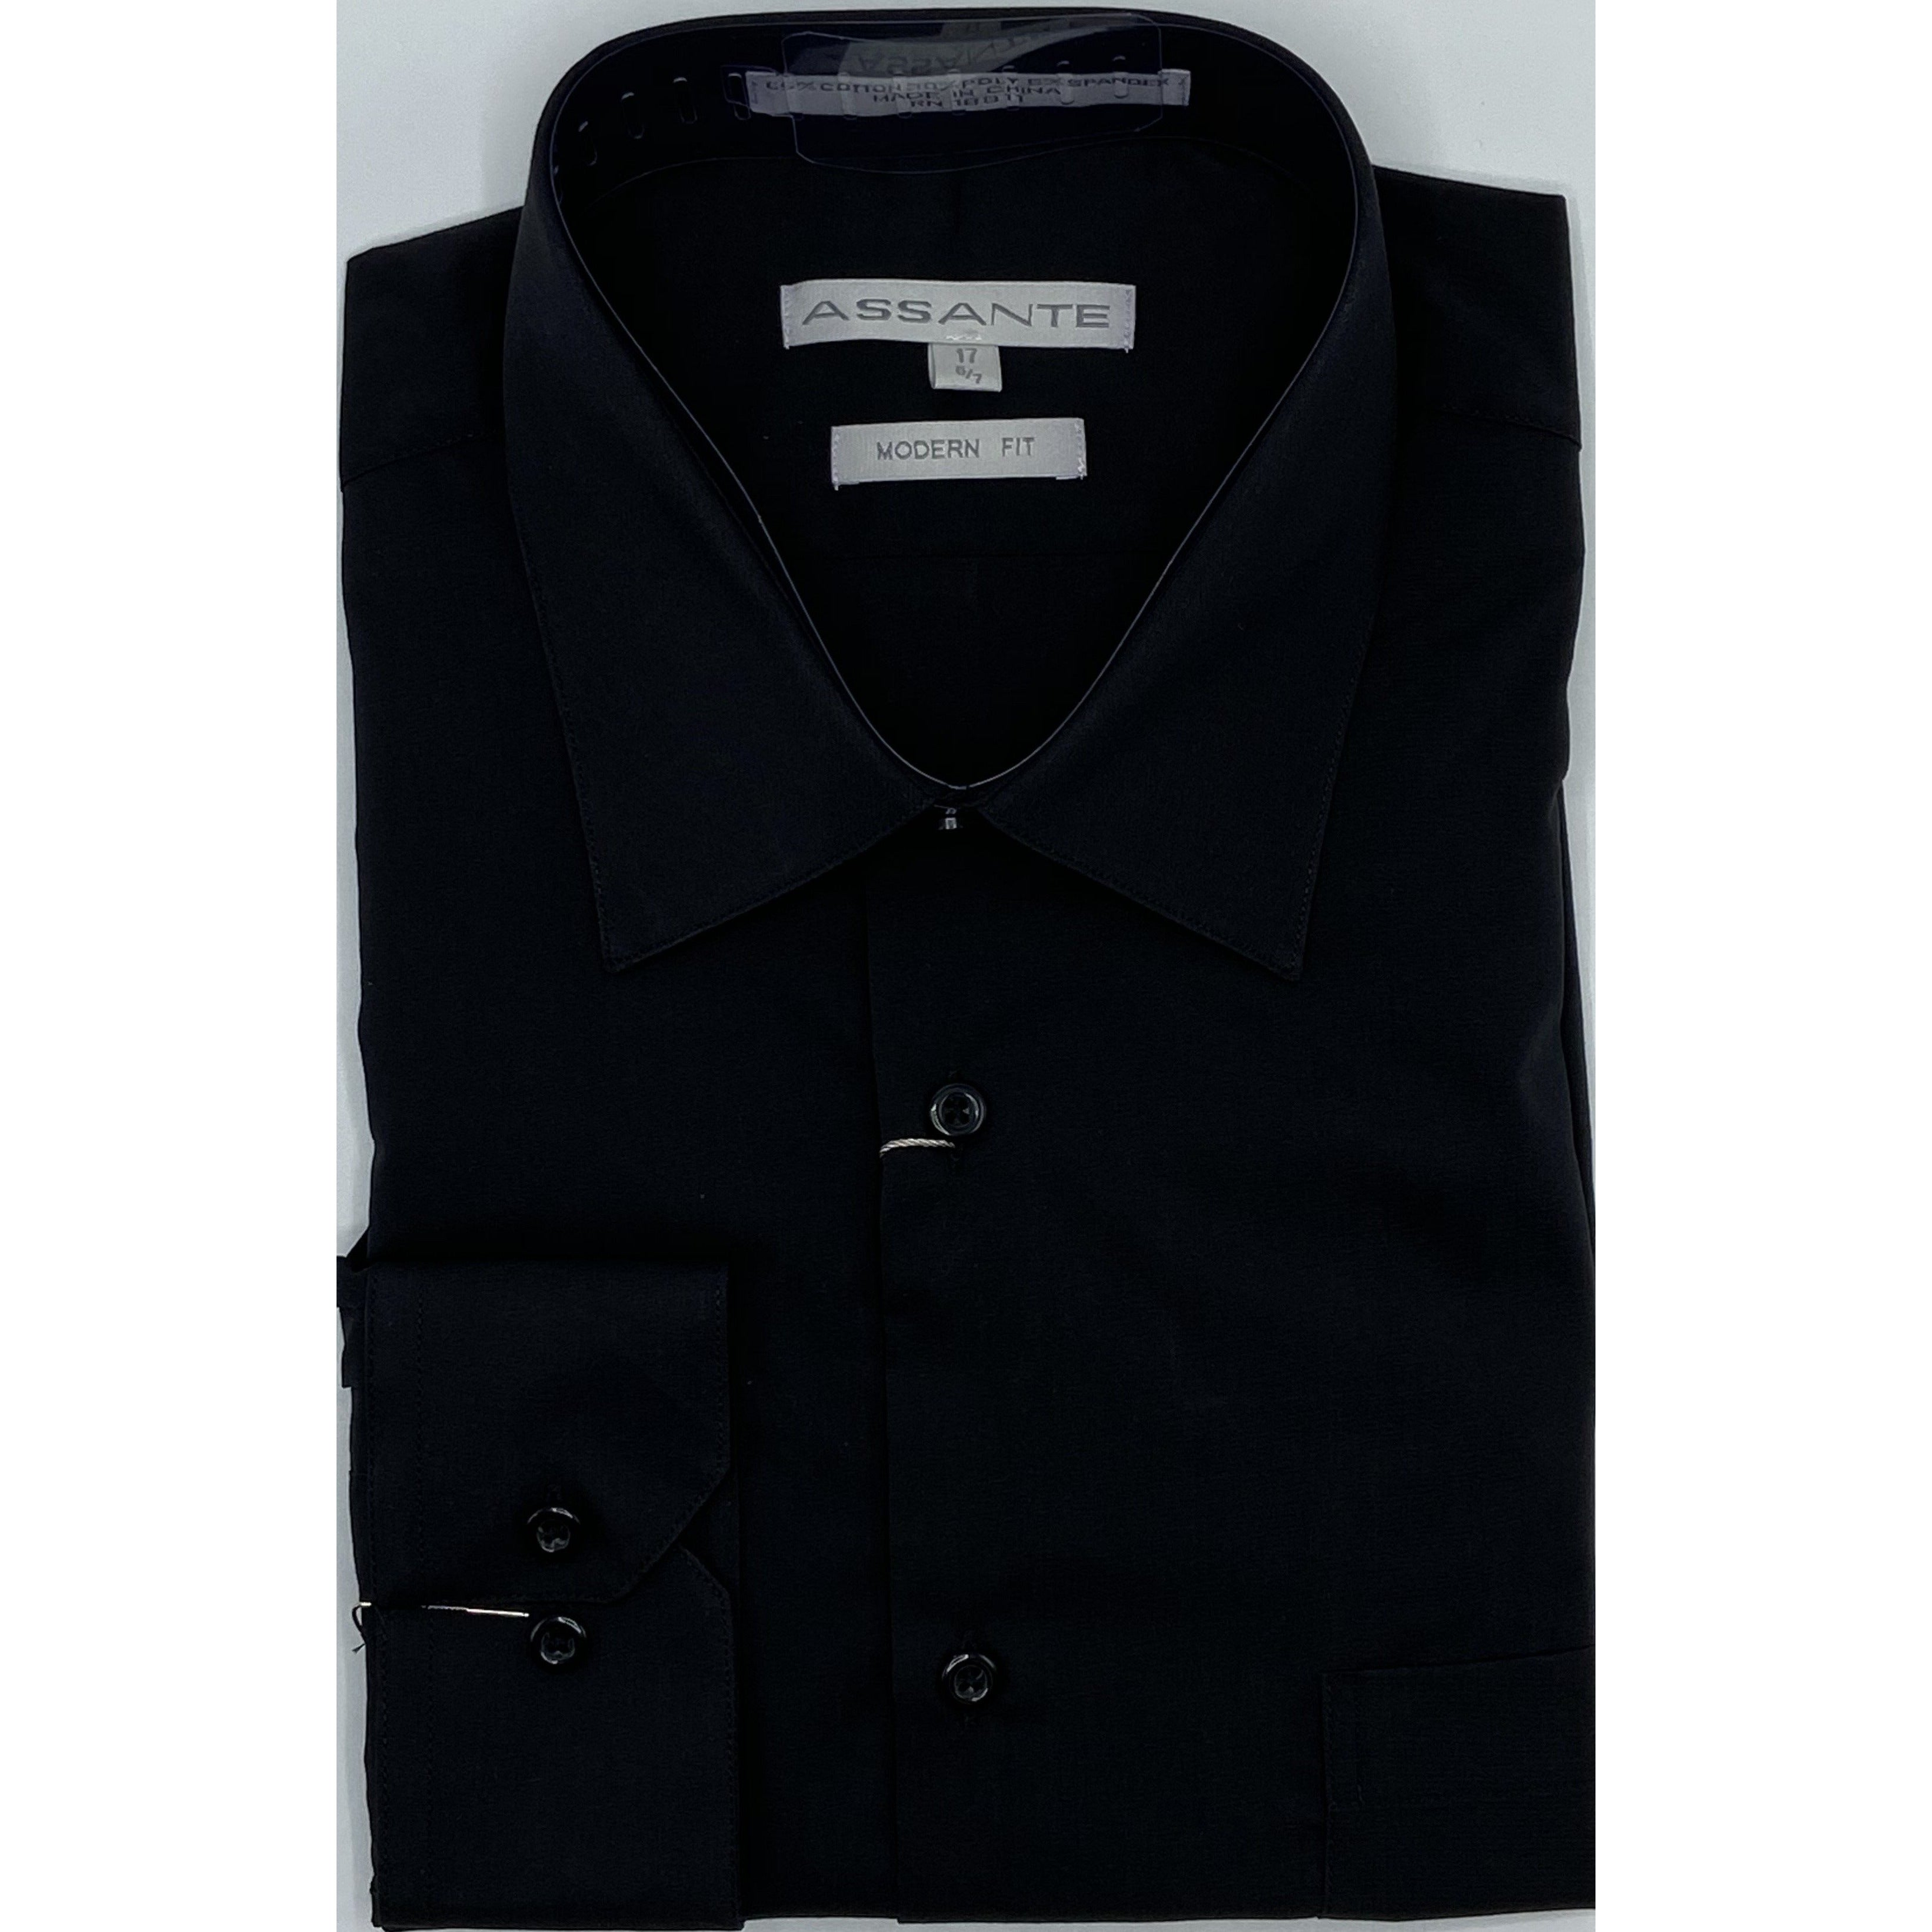 ASSANTE MODERN FIT DRESS SHIRT BLACK